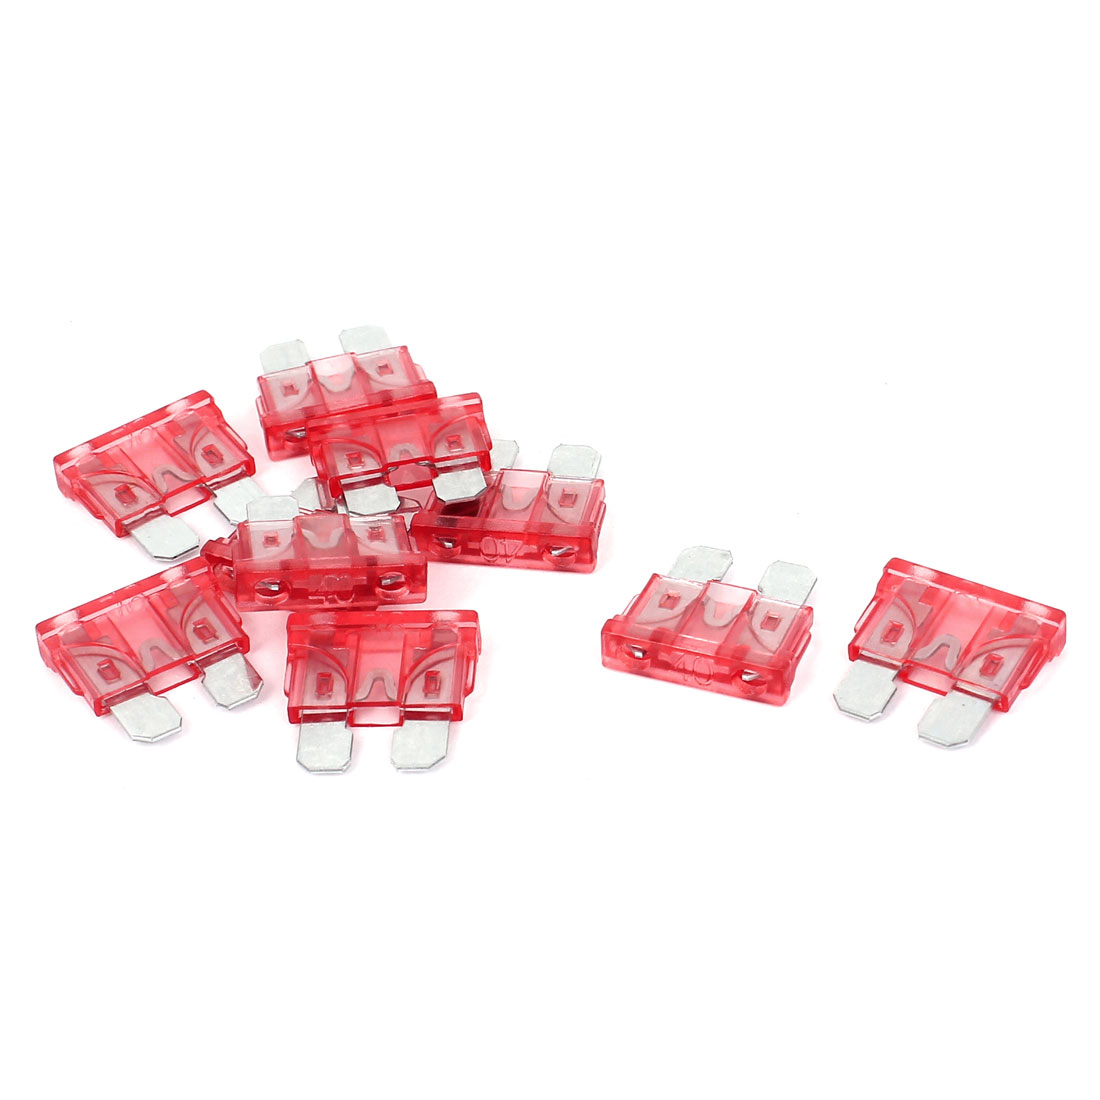 10Pcs 40A Plastic Housing Motorcycle Car SUV ATC ATO Standard Blade Fuse Red